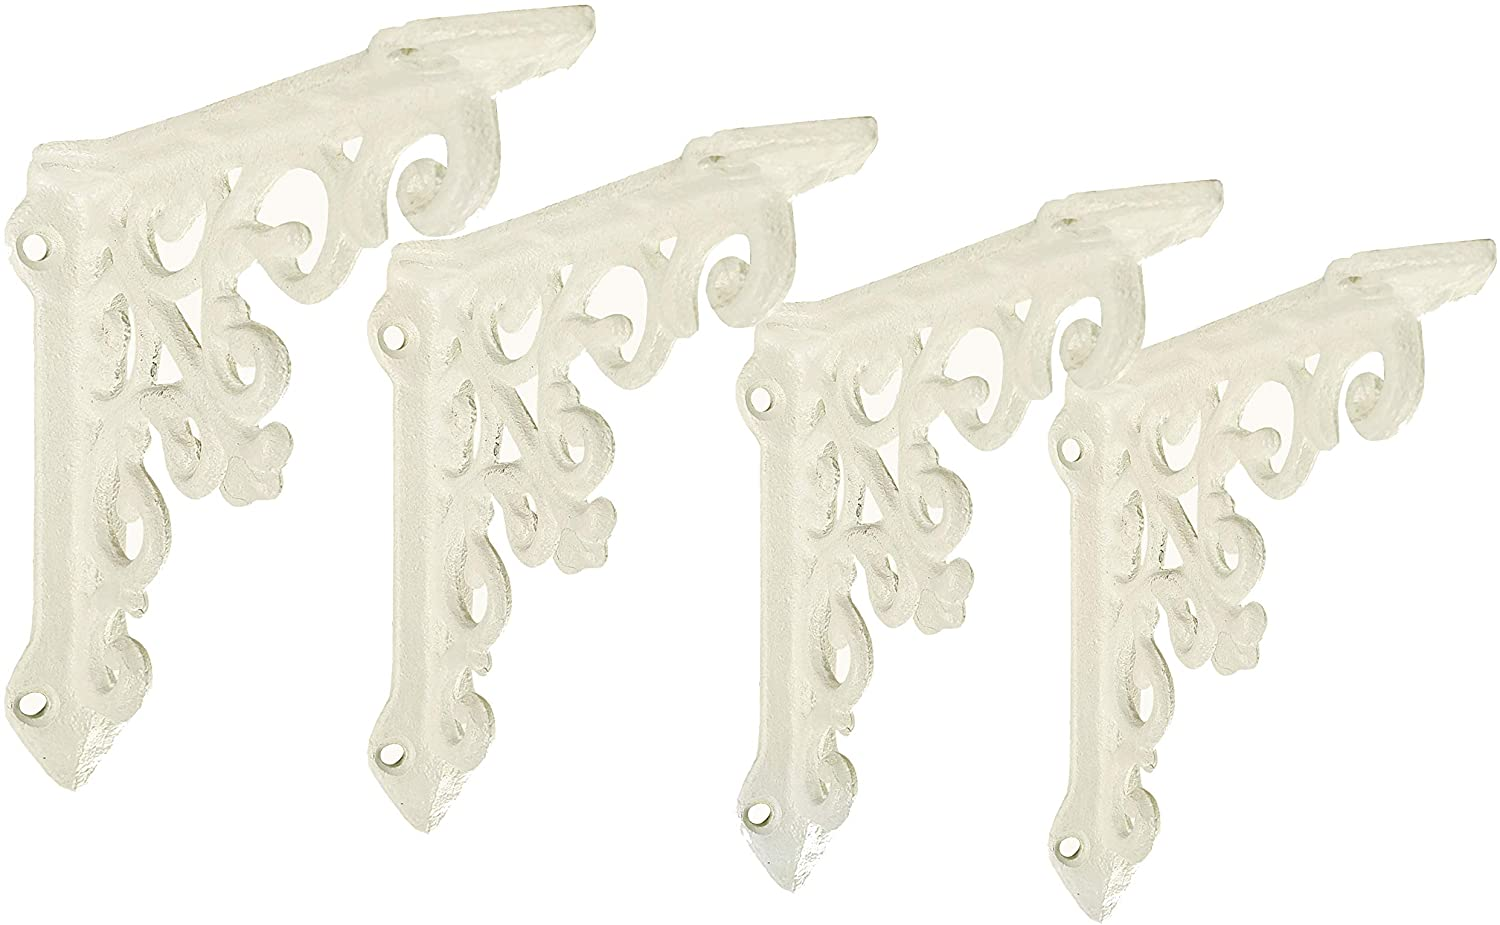 NACH js-90-061AW Cast Iron Victorian Shelf Mount Bracket, Small 4.92 x 1.18 x 4.92 Inches, White, 4 Pack: Home Improvement